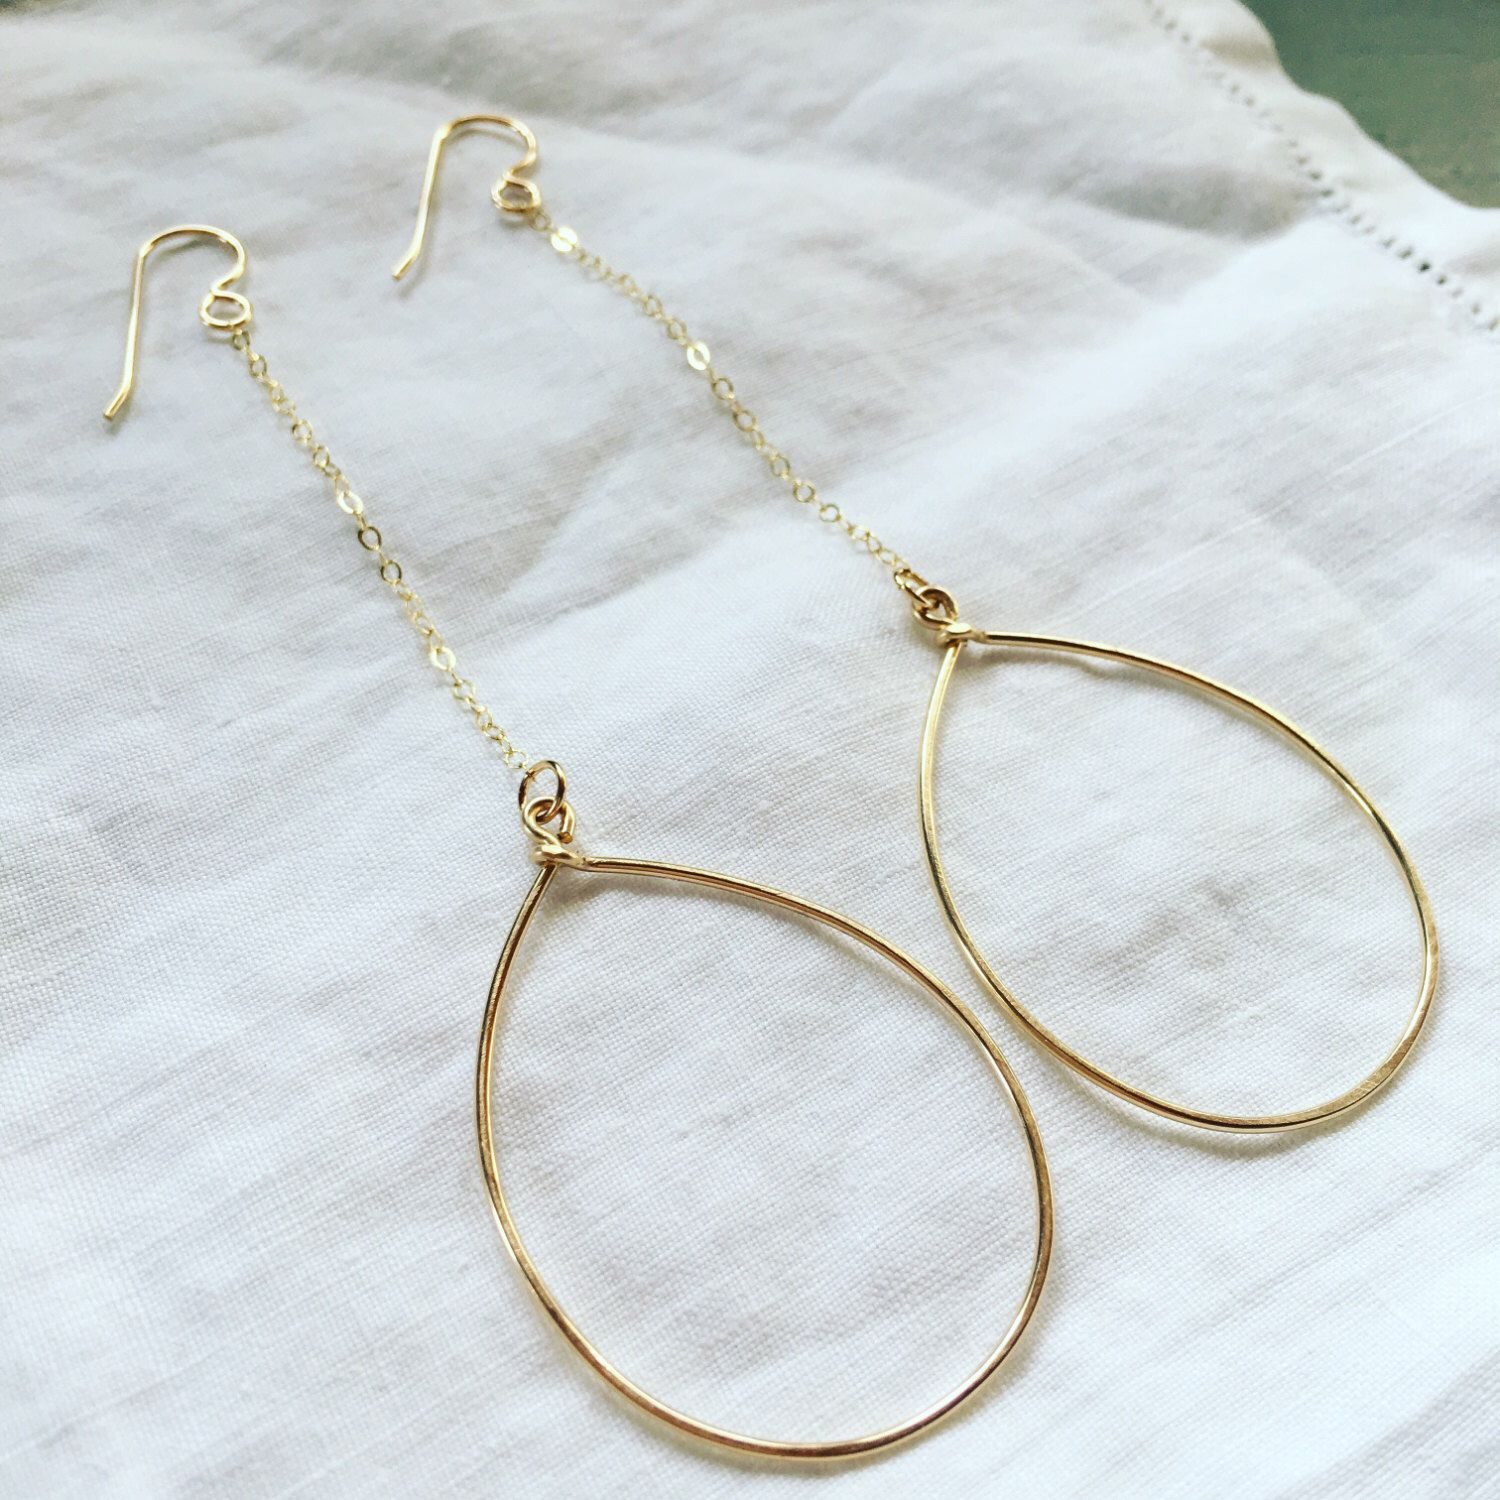 Simple 14k gold-fill drop chain hoops by JettieMuller on Etsy https://www.etsy.com/listing/484295899/simple-14k-gold-fill-drop-chain-hoops